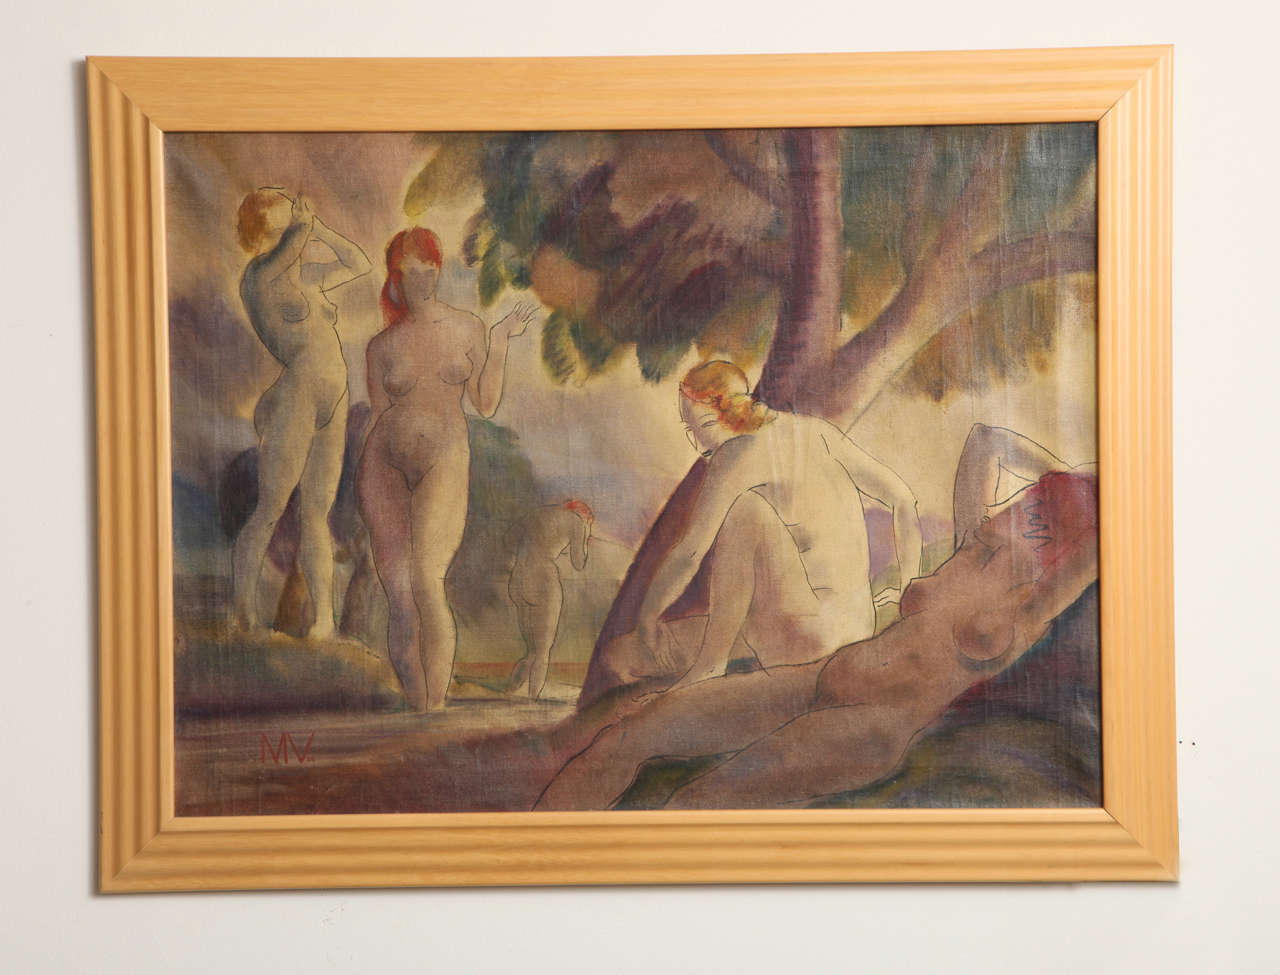 Mixed-media on canvas composition with bathing nudes, signed initialed lower left MV and dated 1938. Measures: 22 ½ x 30 ½ in.